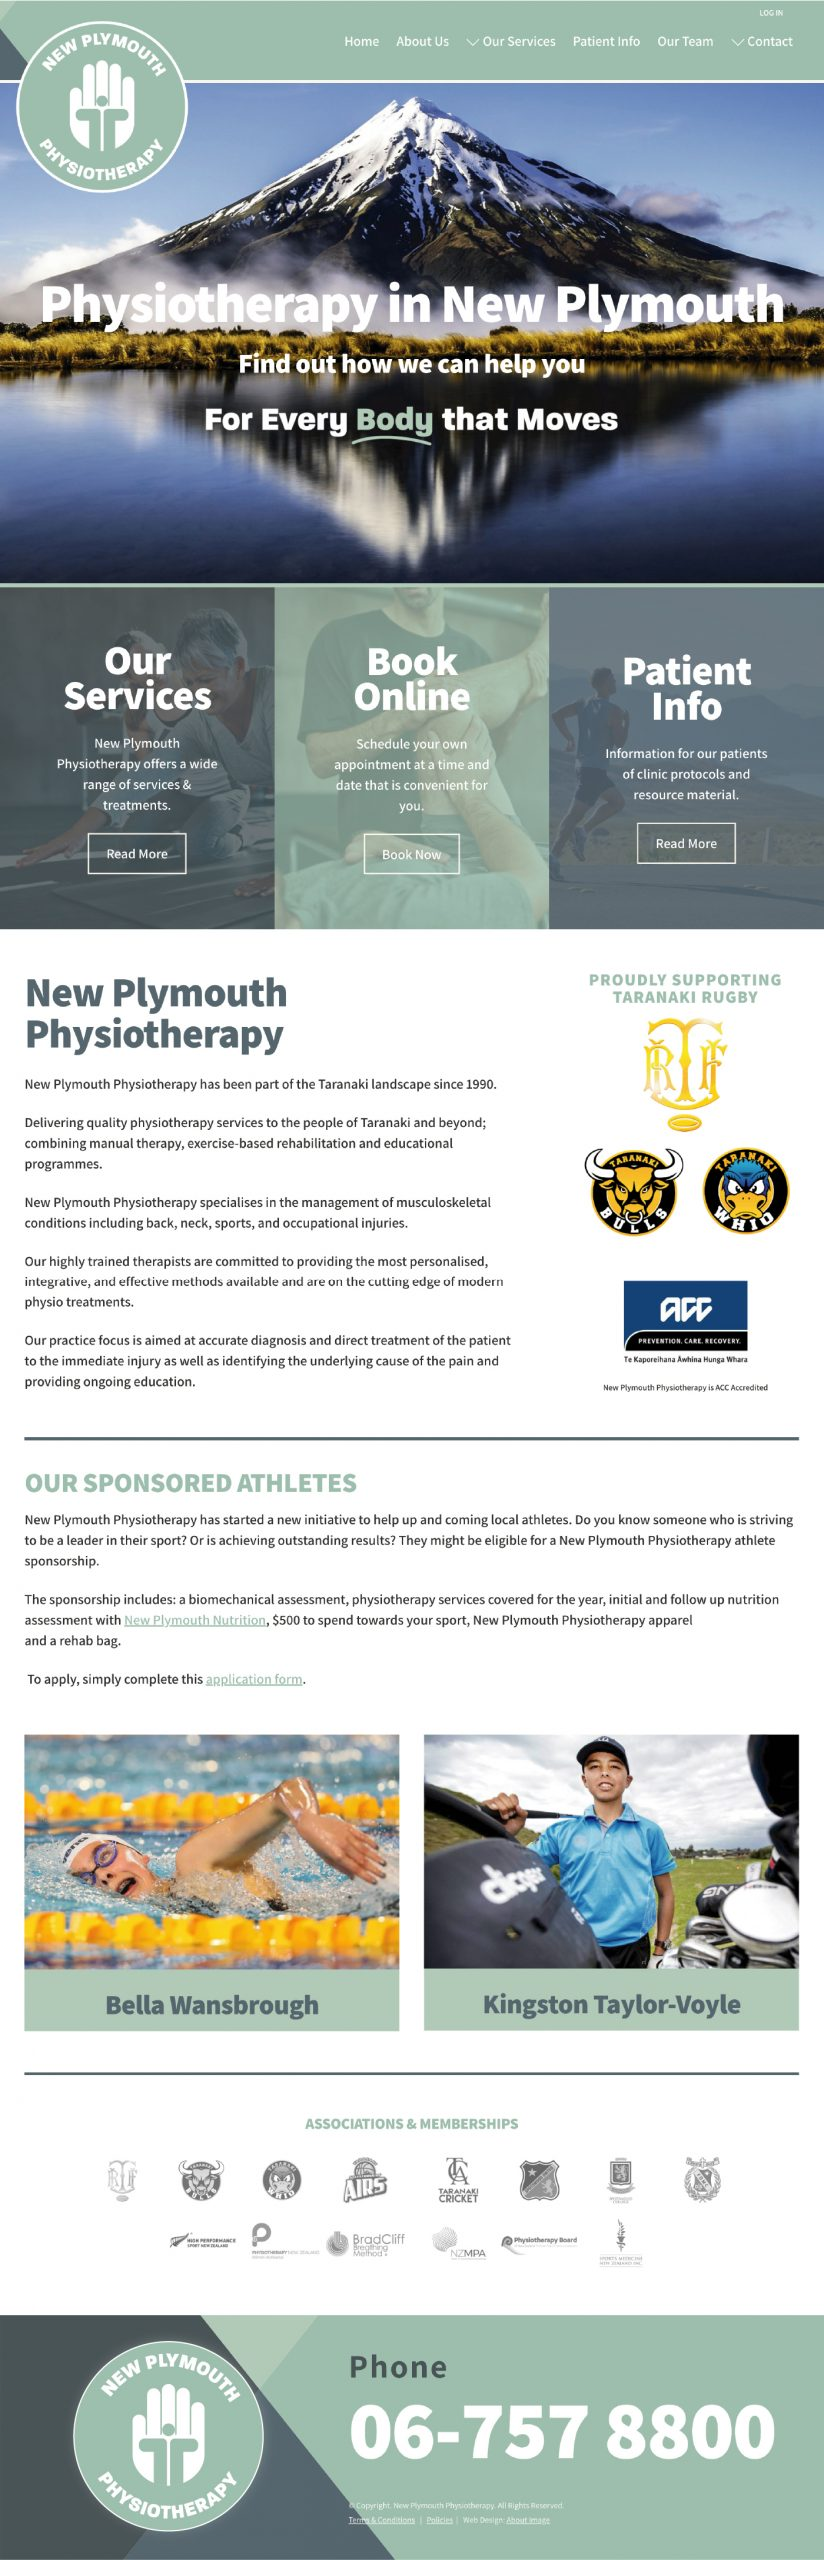 NP Physio Home Page